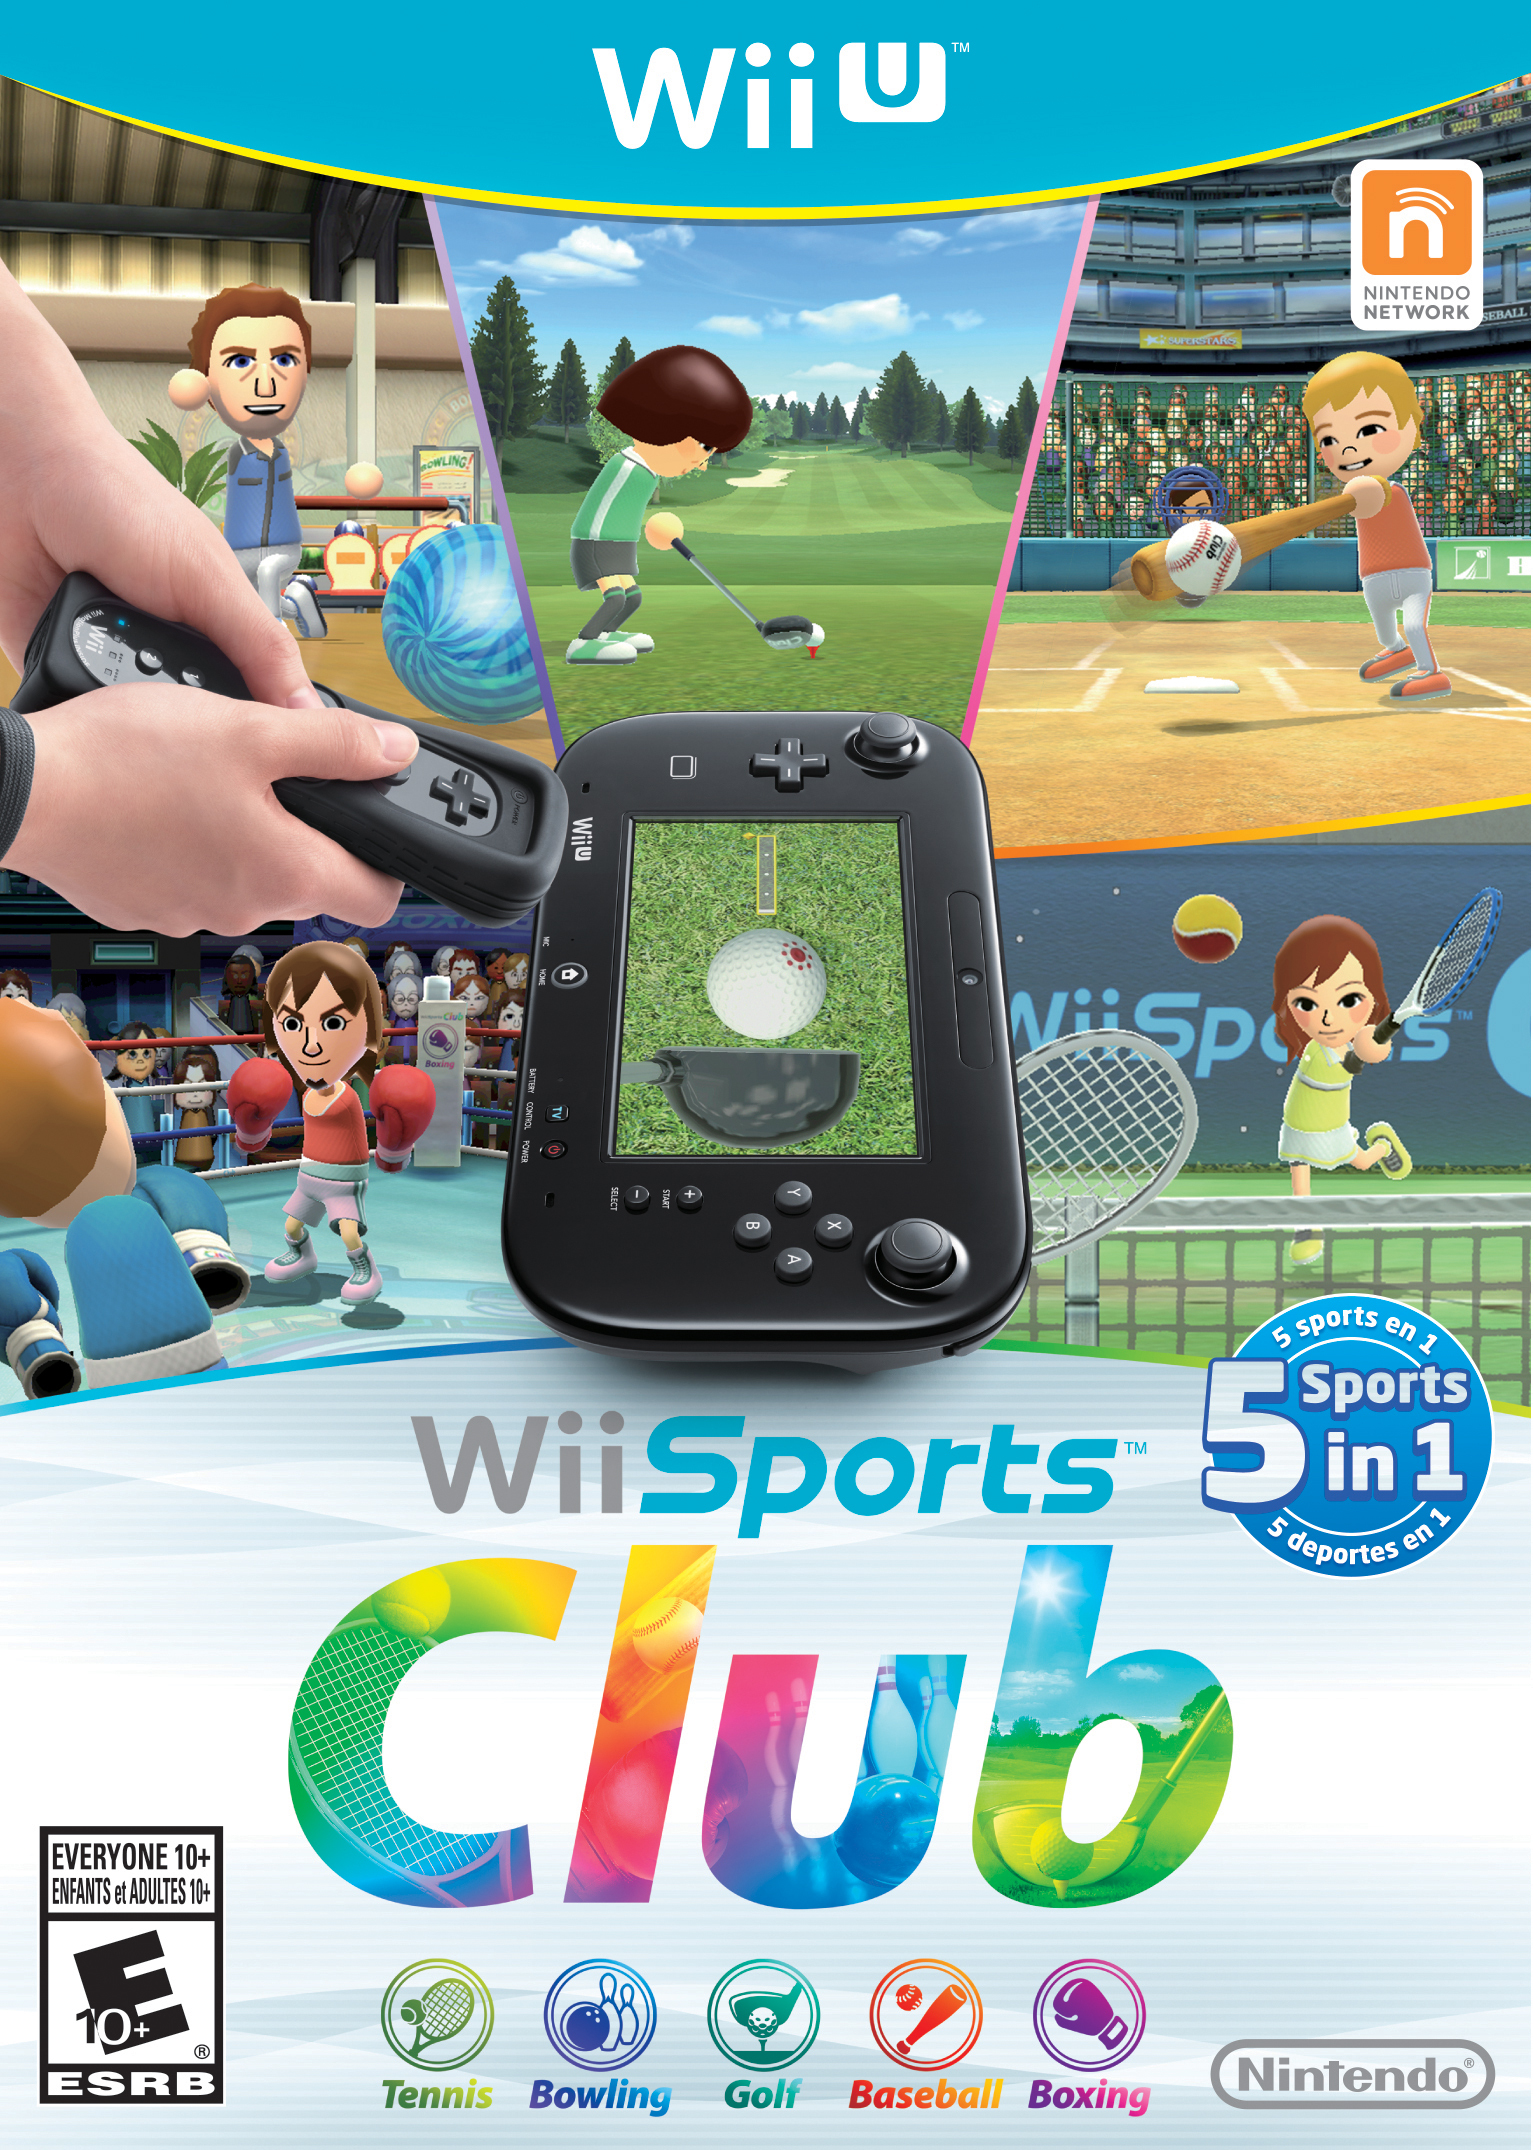 wii sports versus real life sports Wii sports resort is a sports video game developed and published by nintendo for the wii  like wii sports, players mimic the actions performed in real life sports, but are controlled with greater accuracy due to the precision capabilities of the.